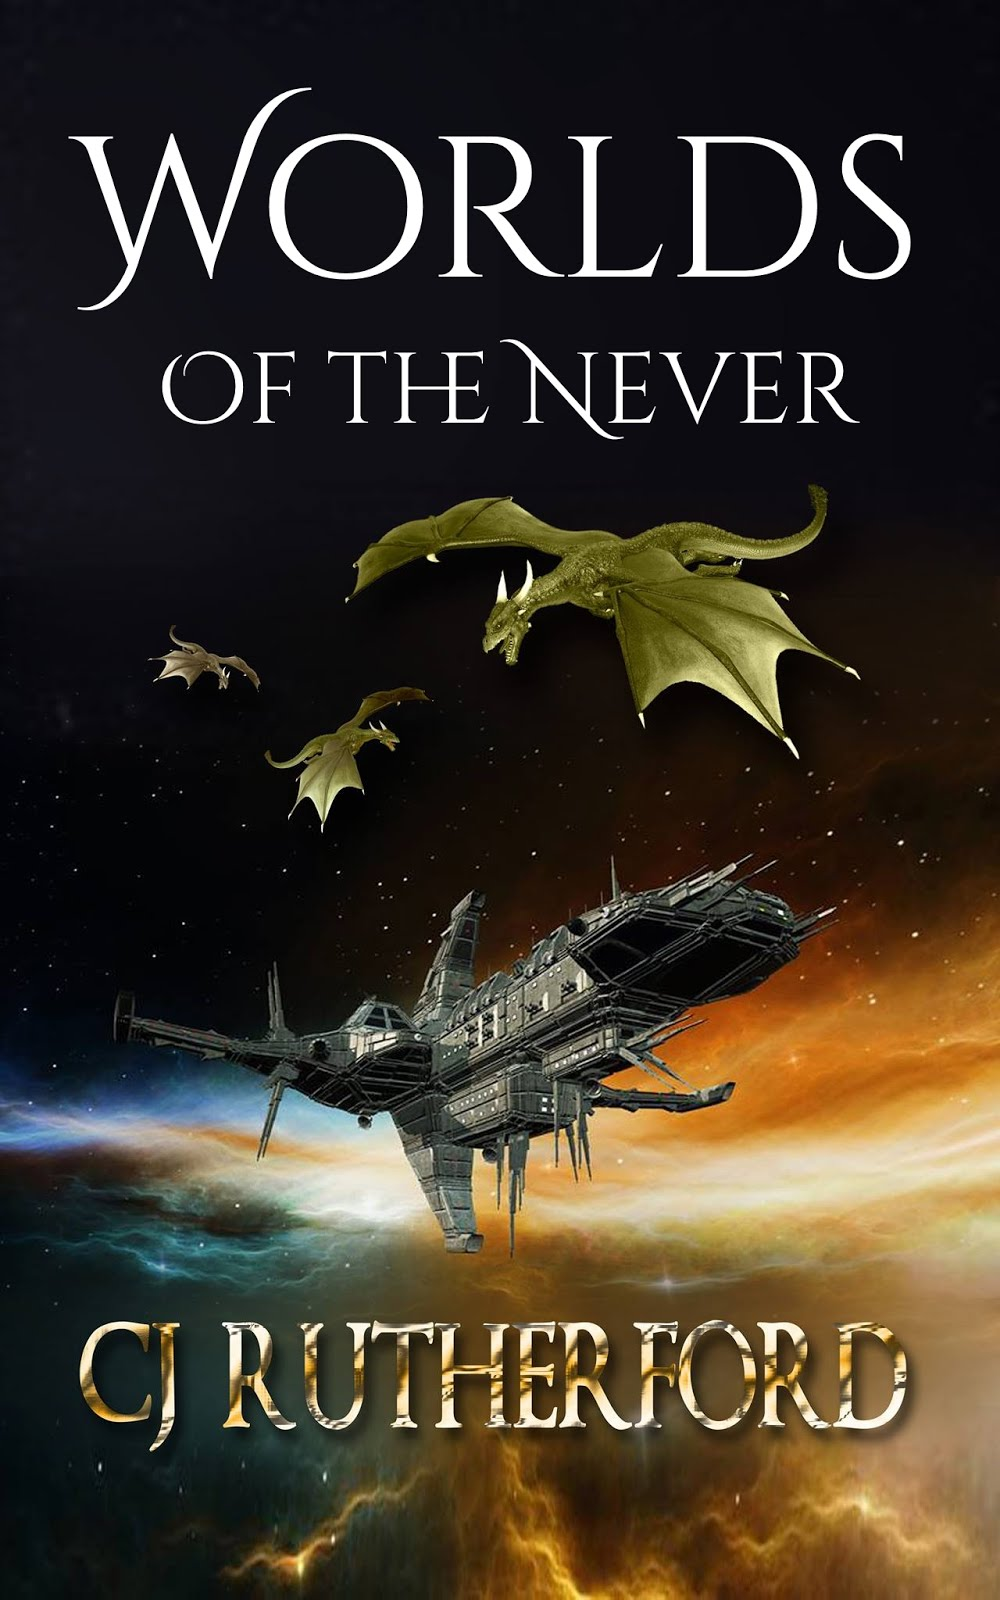 Book two in the Tales of the Neverwar